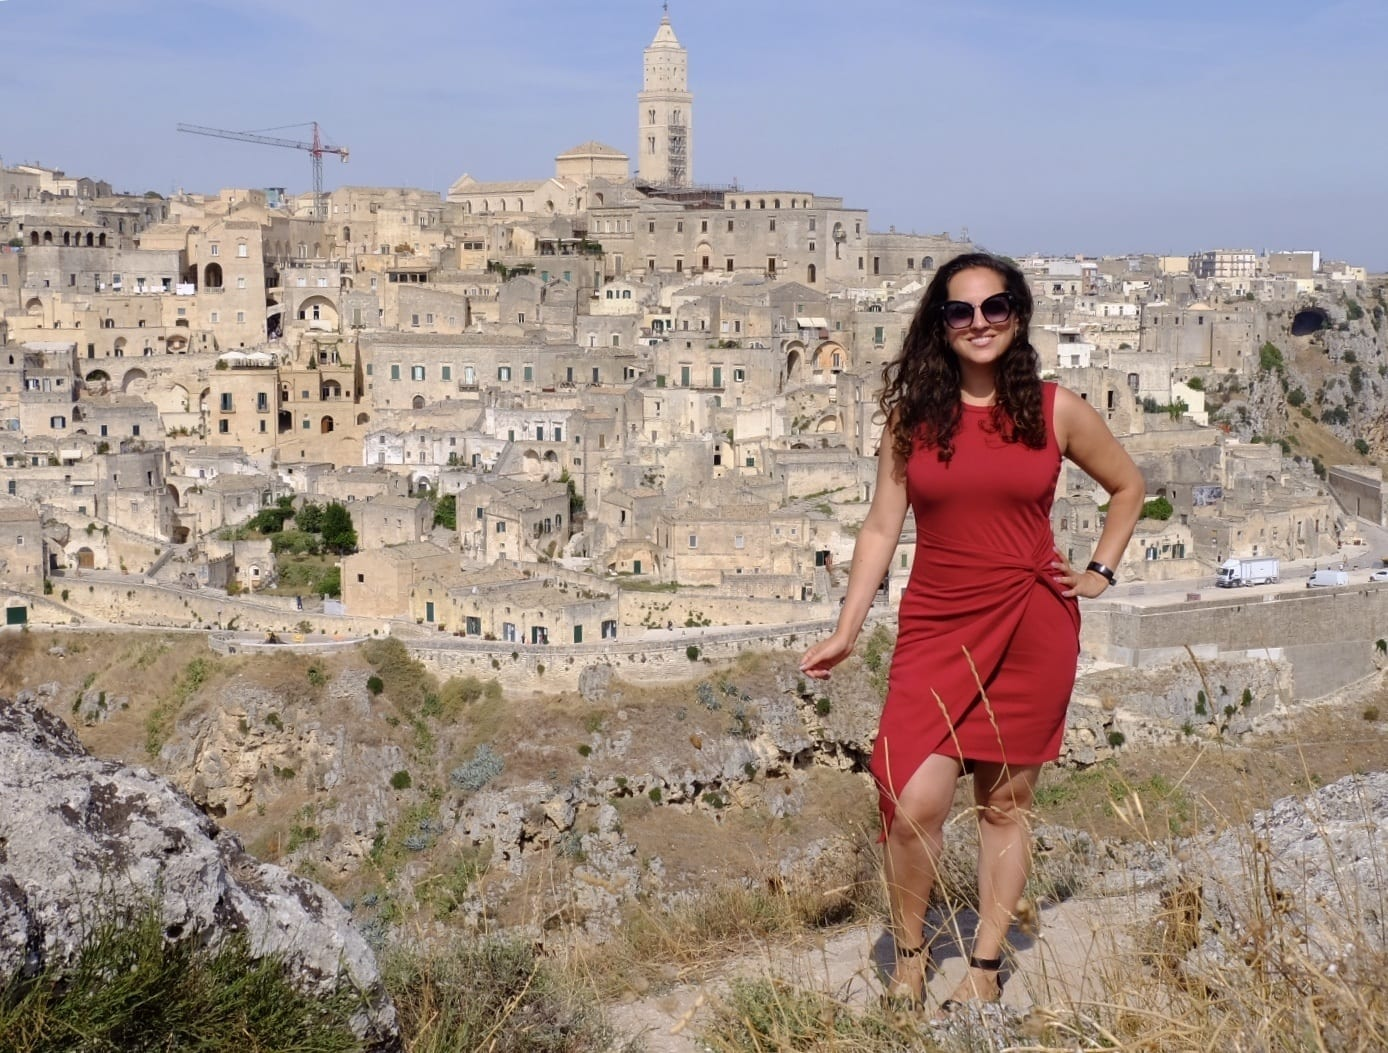 Kate wears a red dress with an asymmetrical hemline and poses in front of the city of Matera: stone towers and homes built on top of a row of sassi (caves).